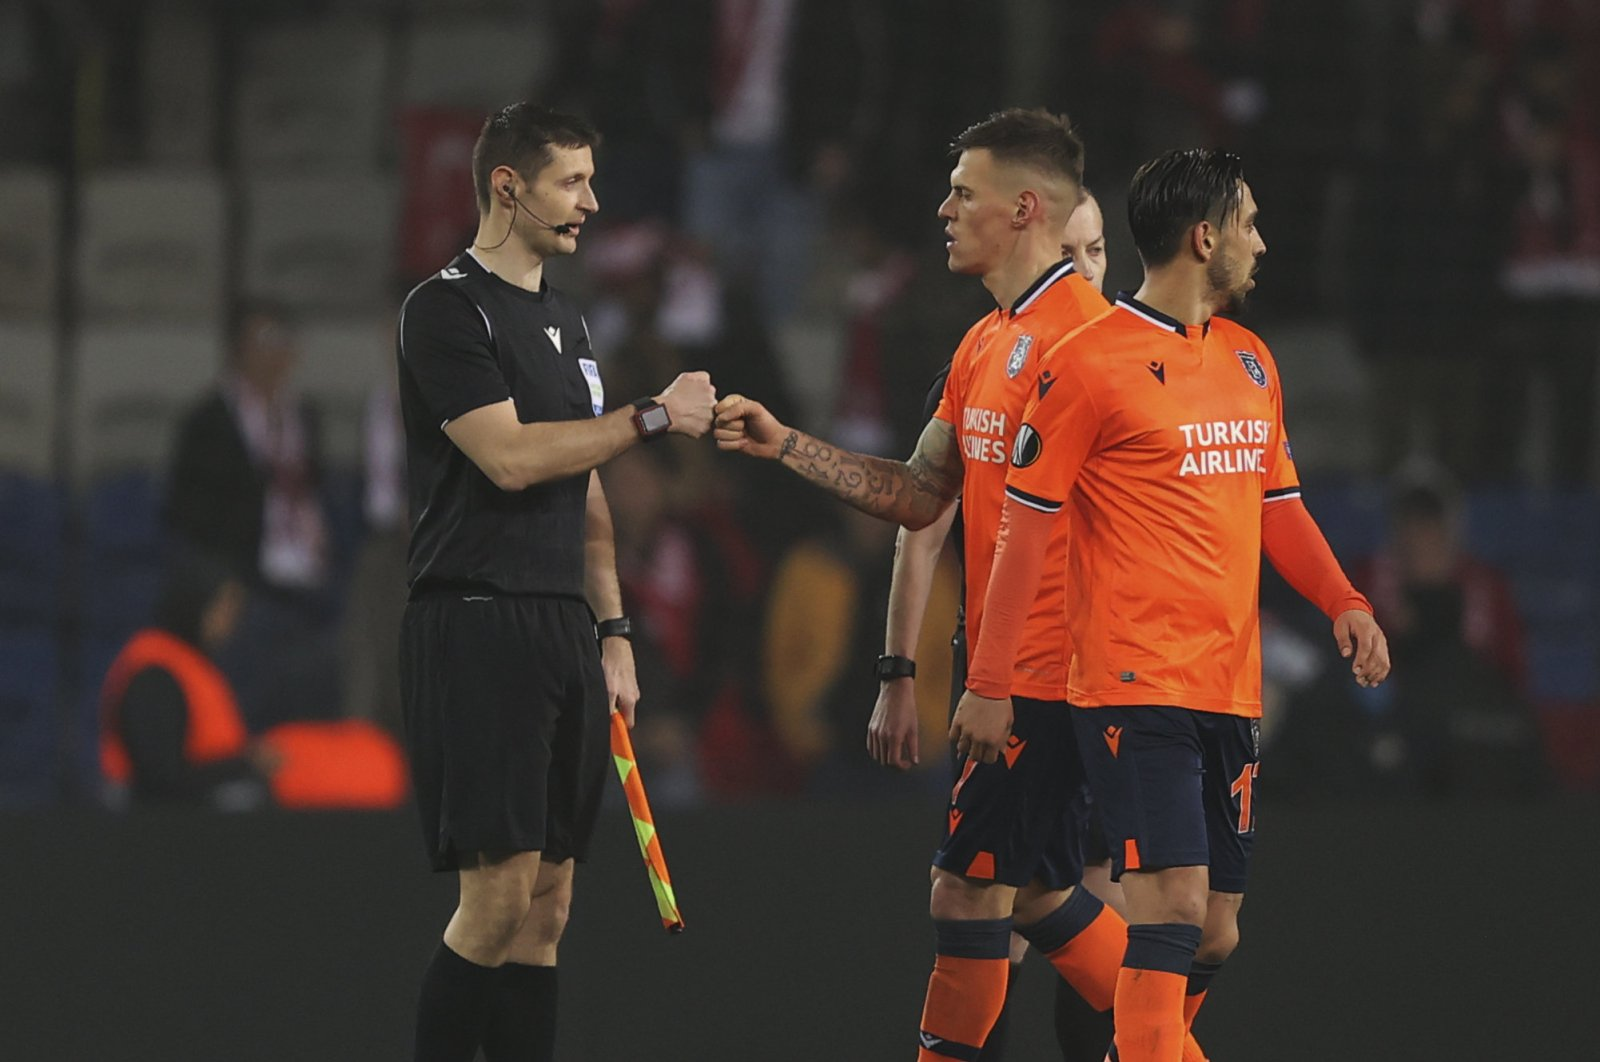 A Medipol Başakşehir player fist bumps the referee instead of a traditional handshake, Istanbul, Turkey, March 12, 2020. (AP Photo)